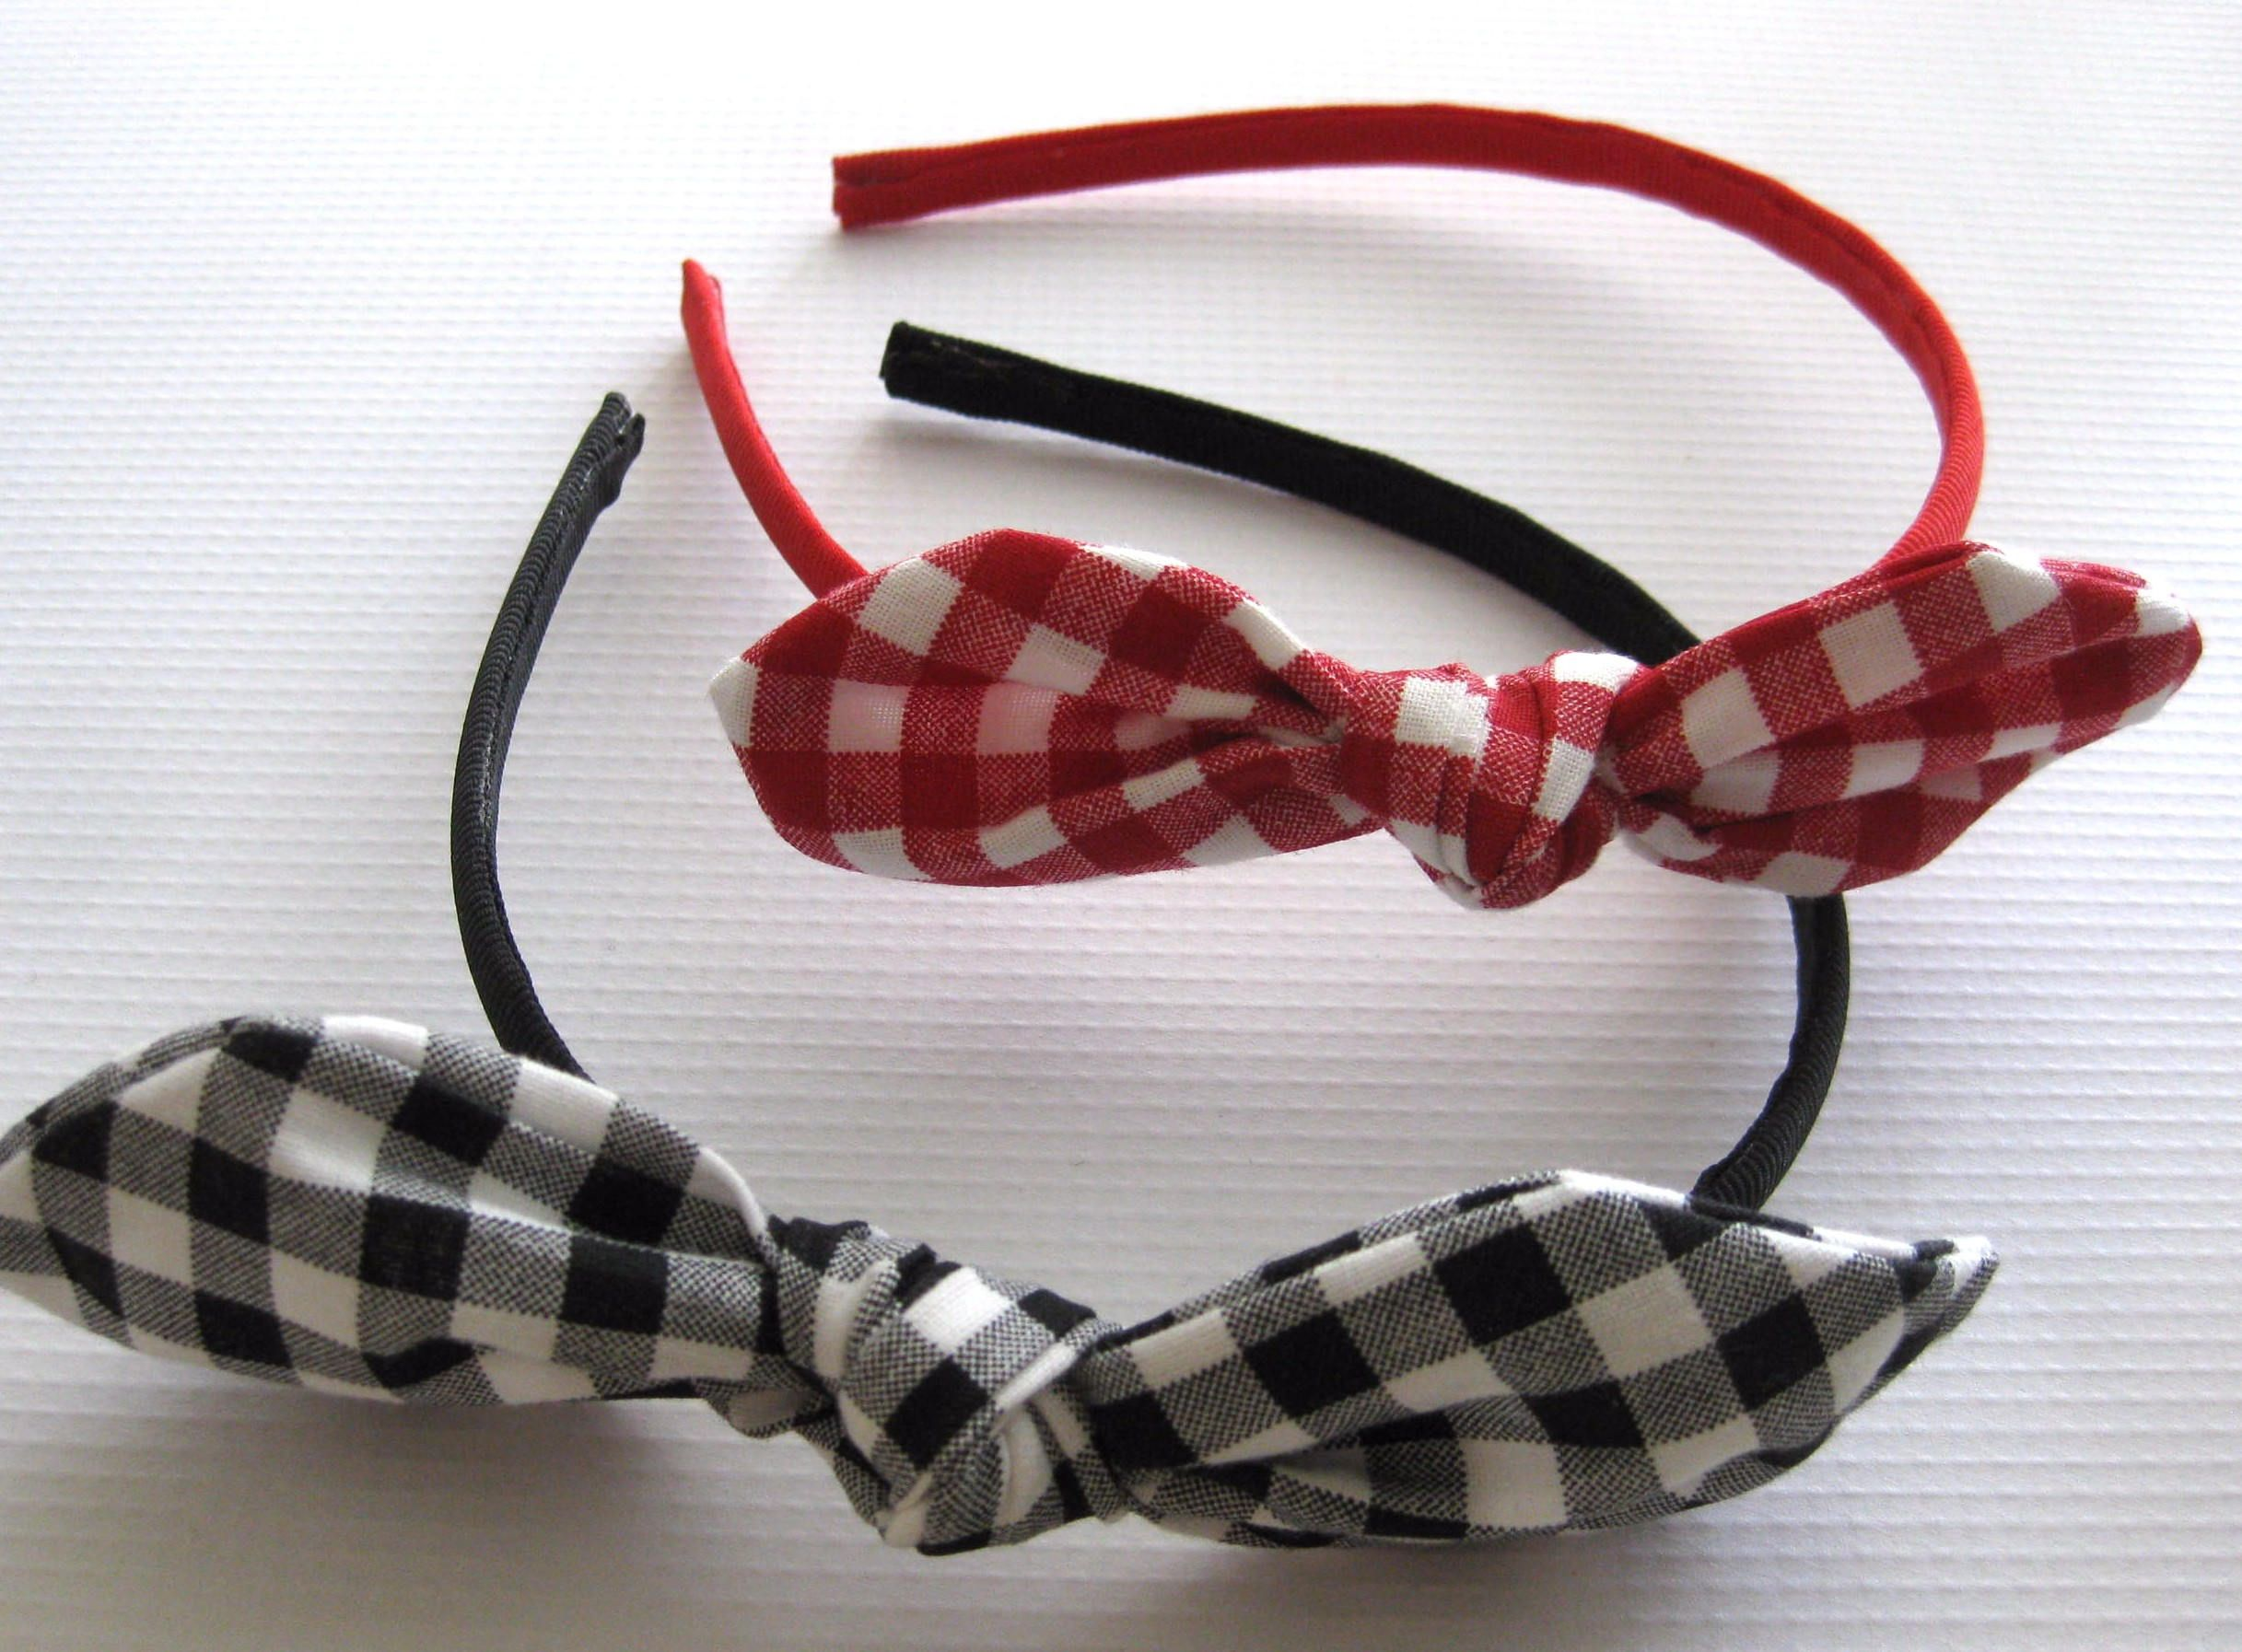 Custom Order - Gingham Knot Hard Headband - Toddler Headband - Hair Bows for Girls - Knot Bow Headbands - Black, Red and White Knot Bow by GhinesCreations on Etsy